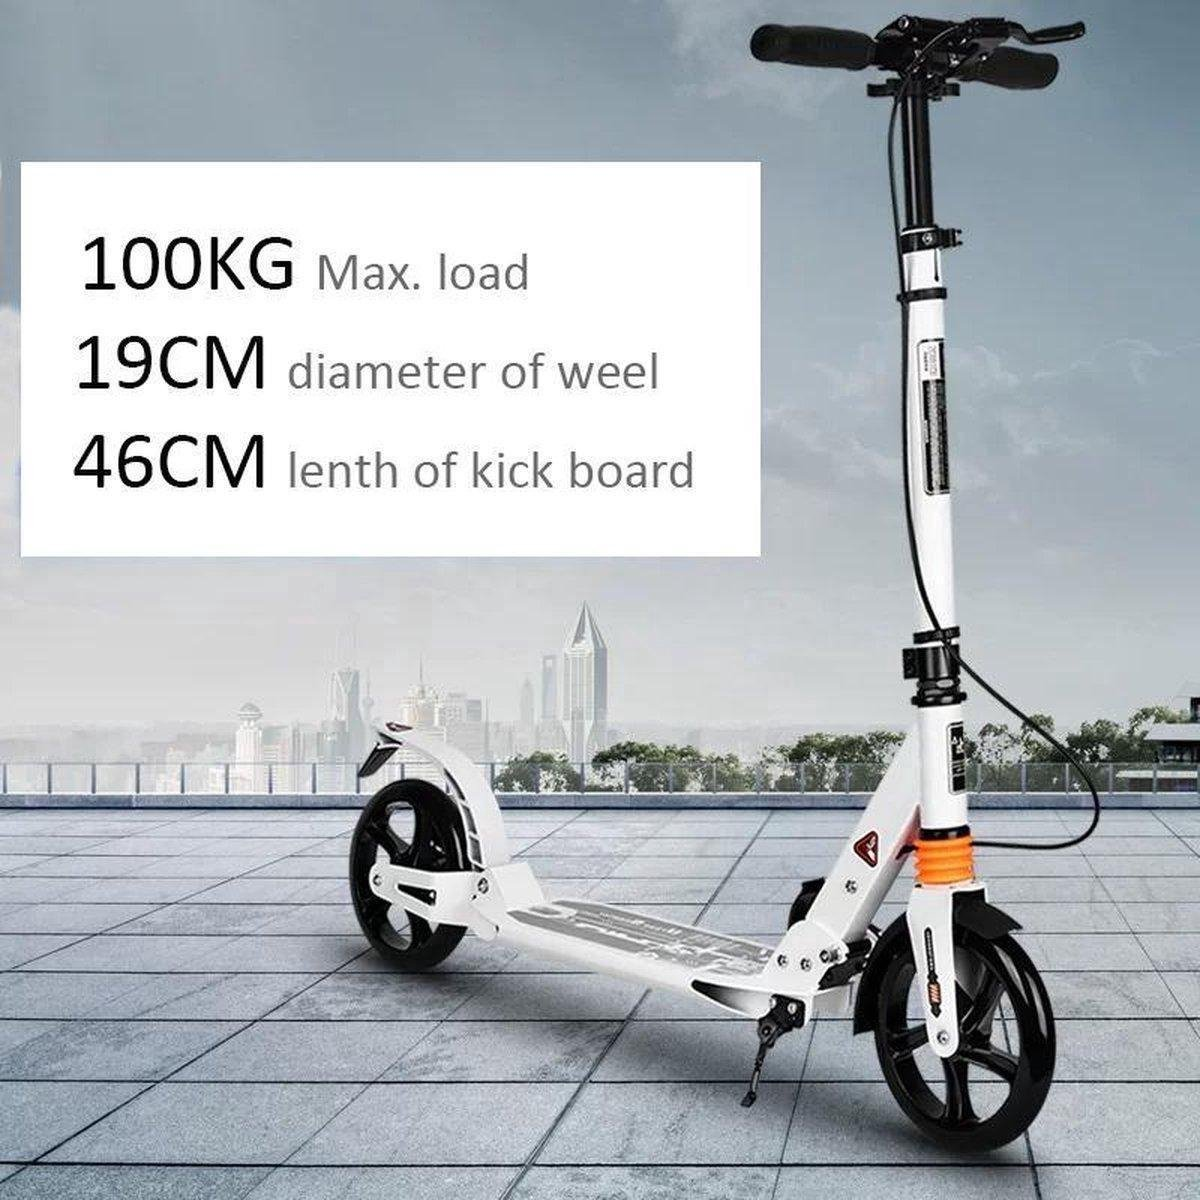 Witte Urban Scooter Step -Extra brede banden 200mm X 40mm -Wit-Step Volwassenen Opvouwbaar -Wit- Step(Niet elektrisch)-Step Volwassenen Opvouwbaar - Vering - - 100kg - Autoped Grote Wielen